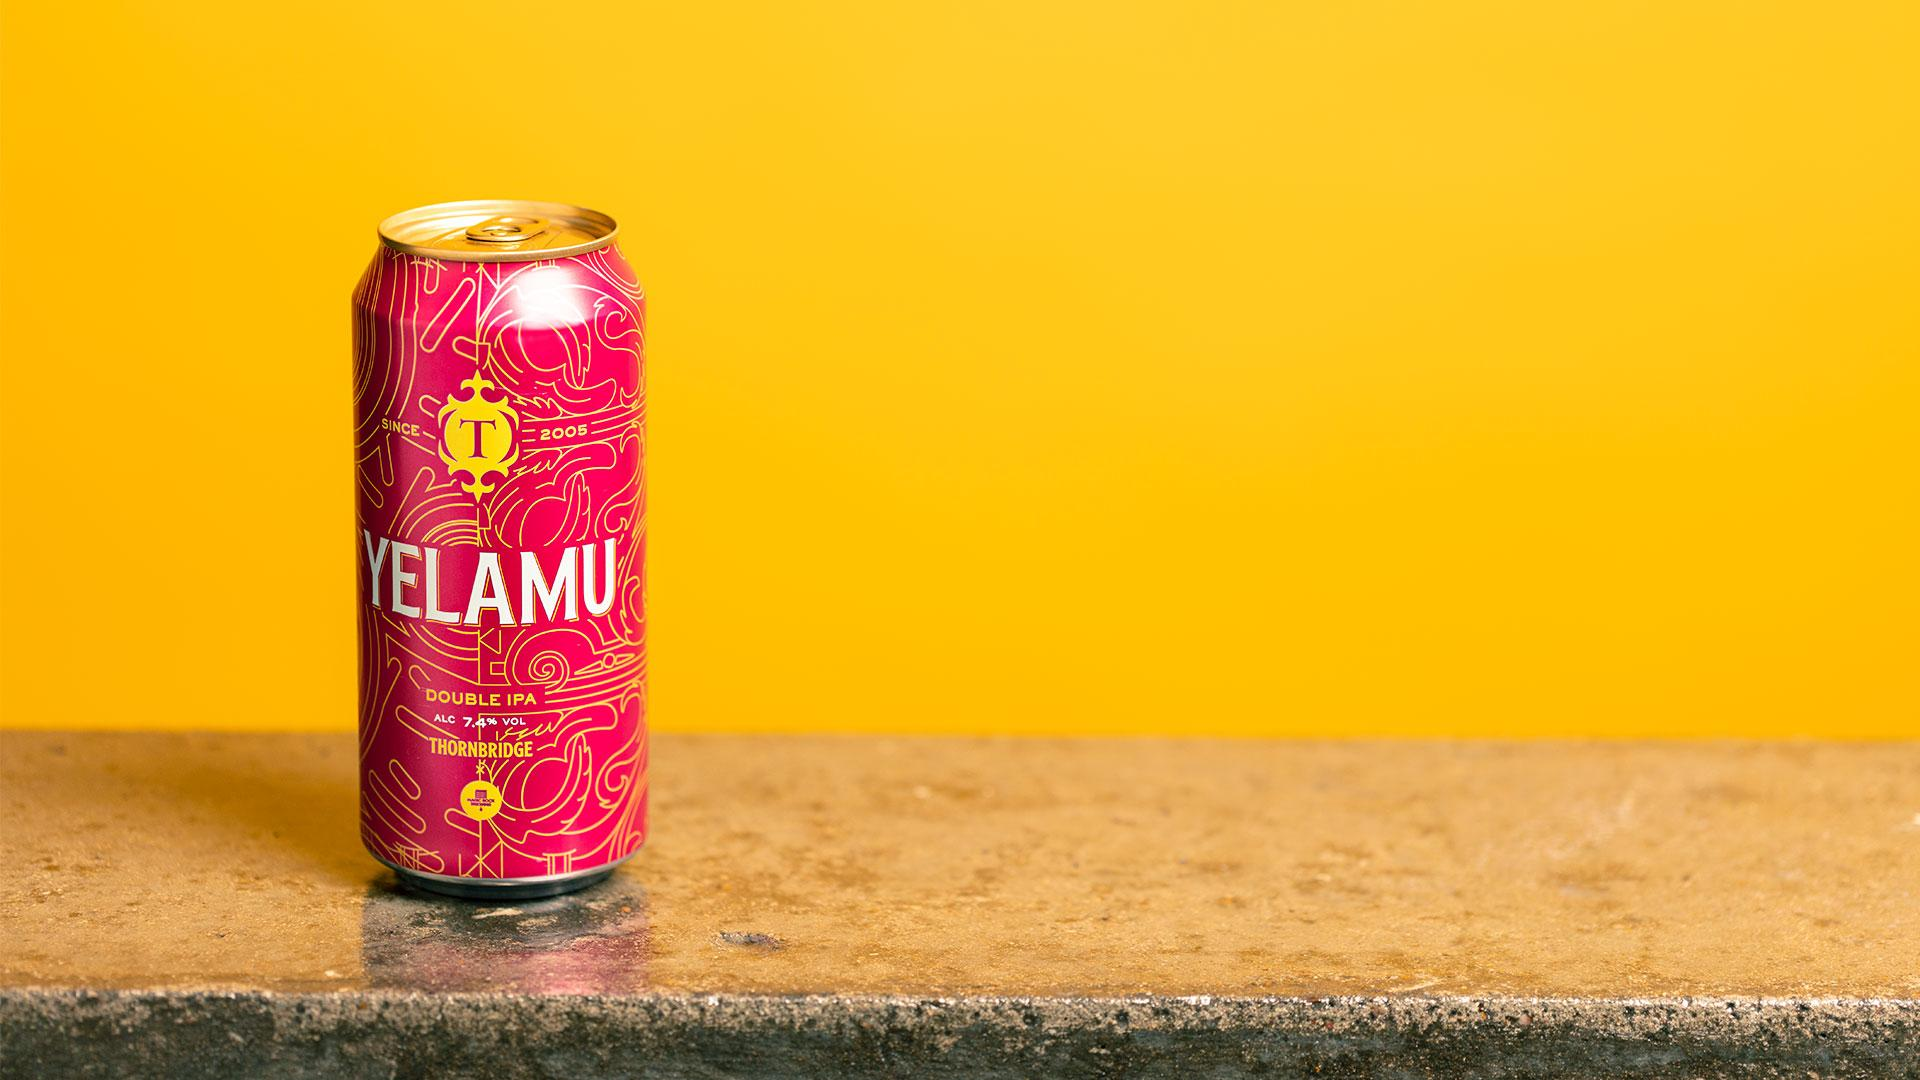 Tesco craft beer: Thornbridge x Magic Rock Yelamu